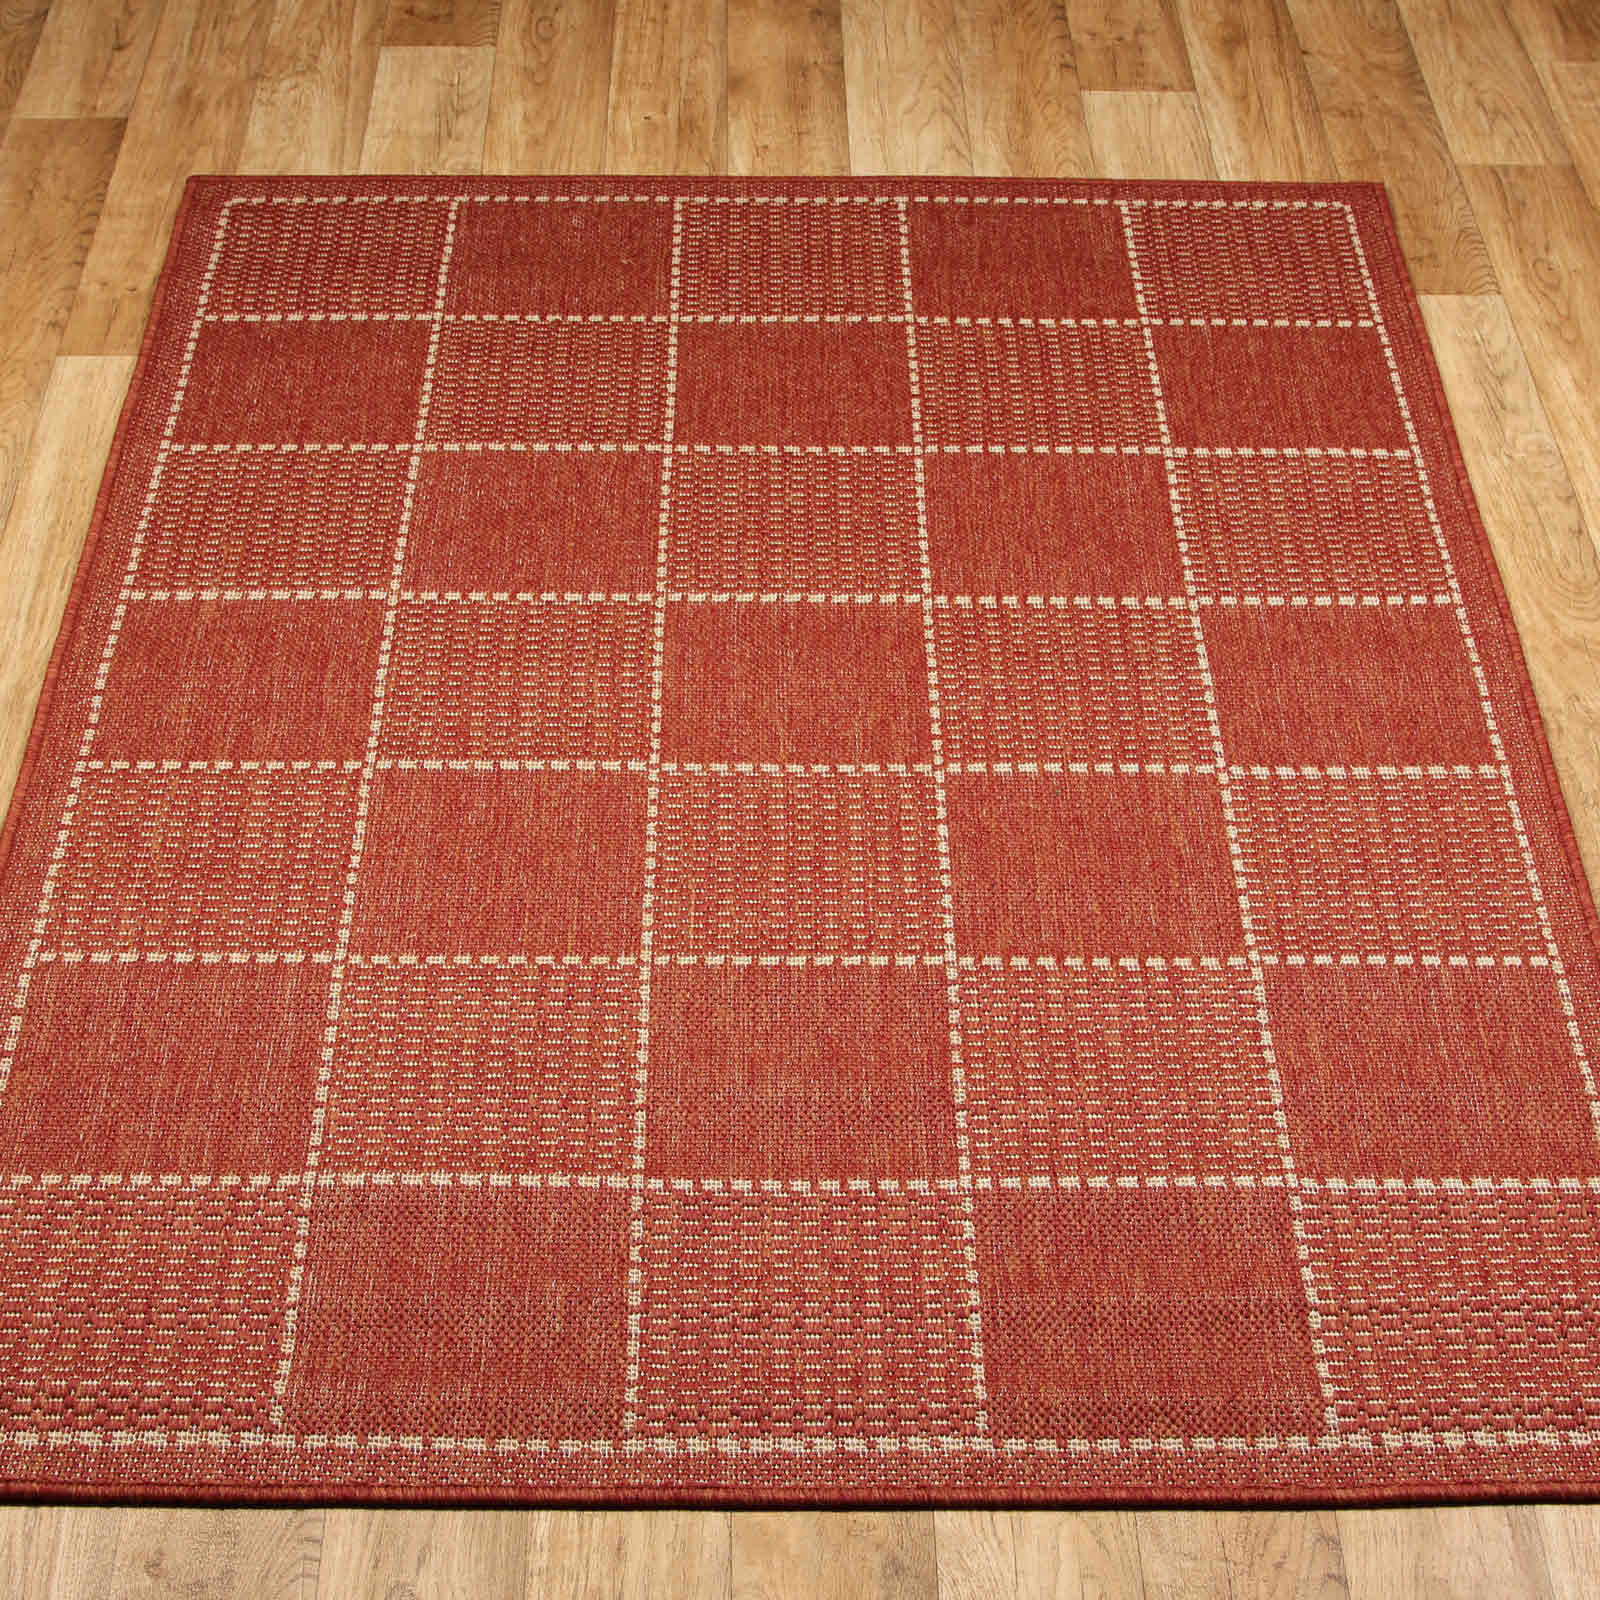 Super Sisalo Anti Slip Kitchen Rugs In Terracotta